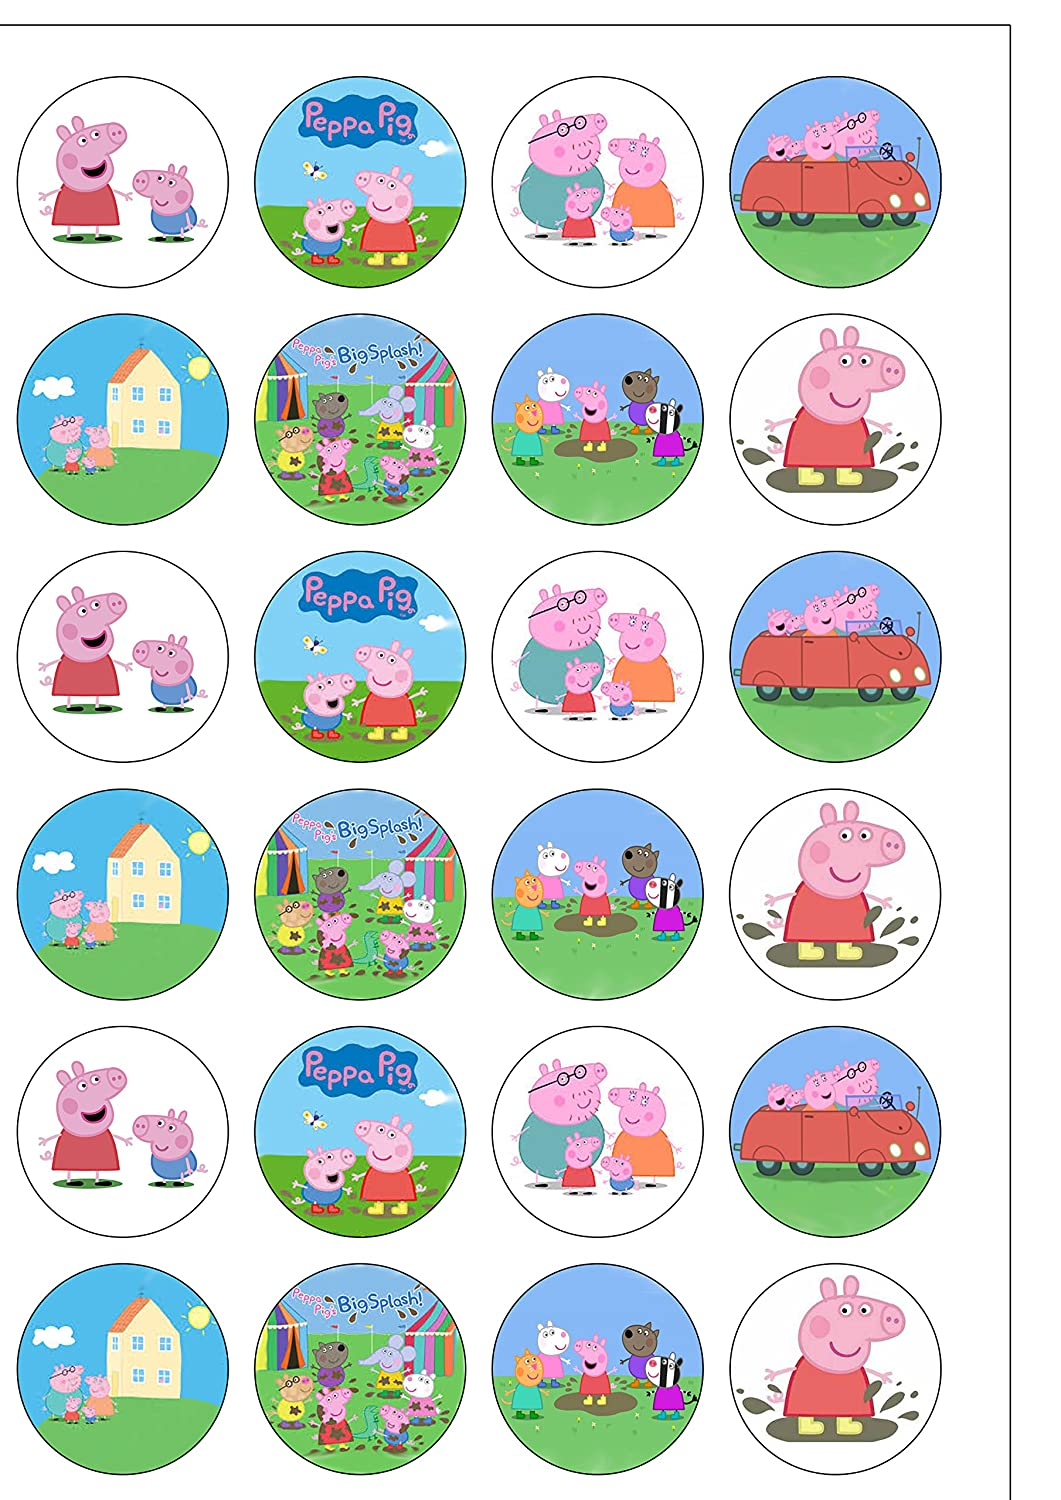 24 Precut Round Peppa Pig and Friends Edible Wafer Paper Cake Toppers